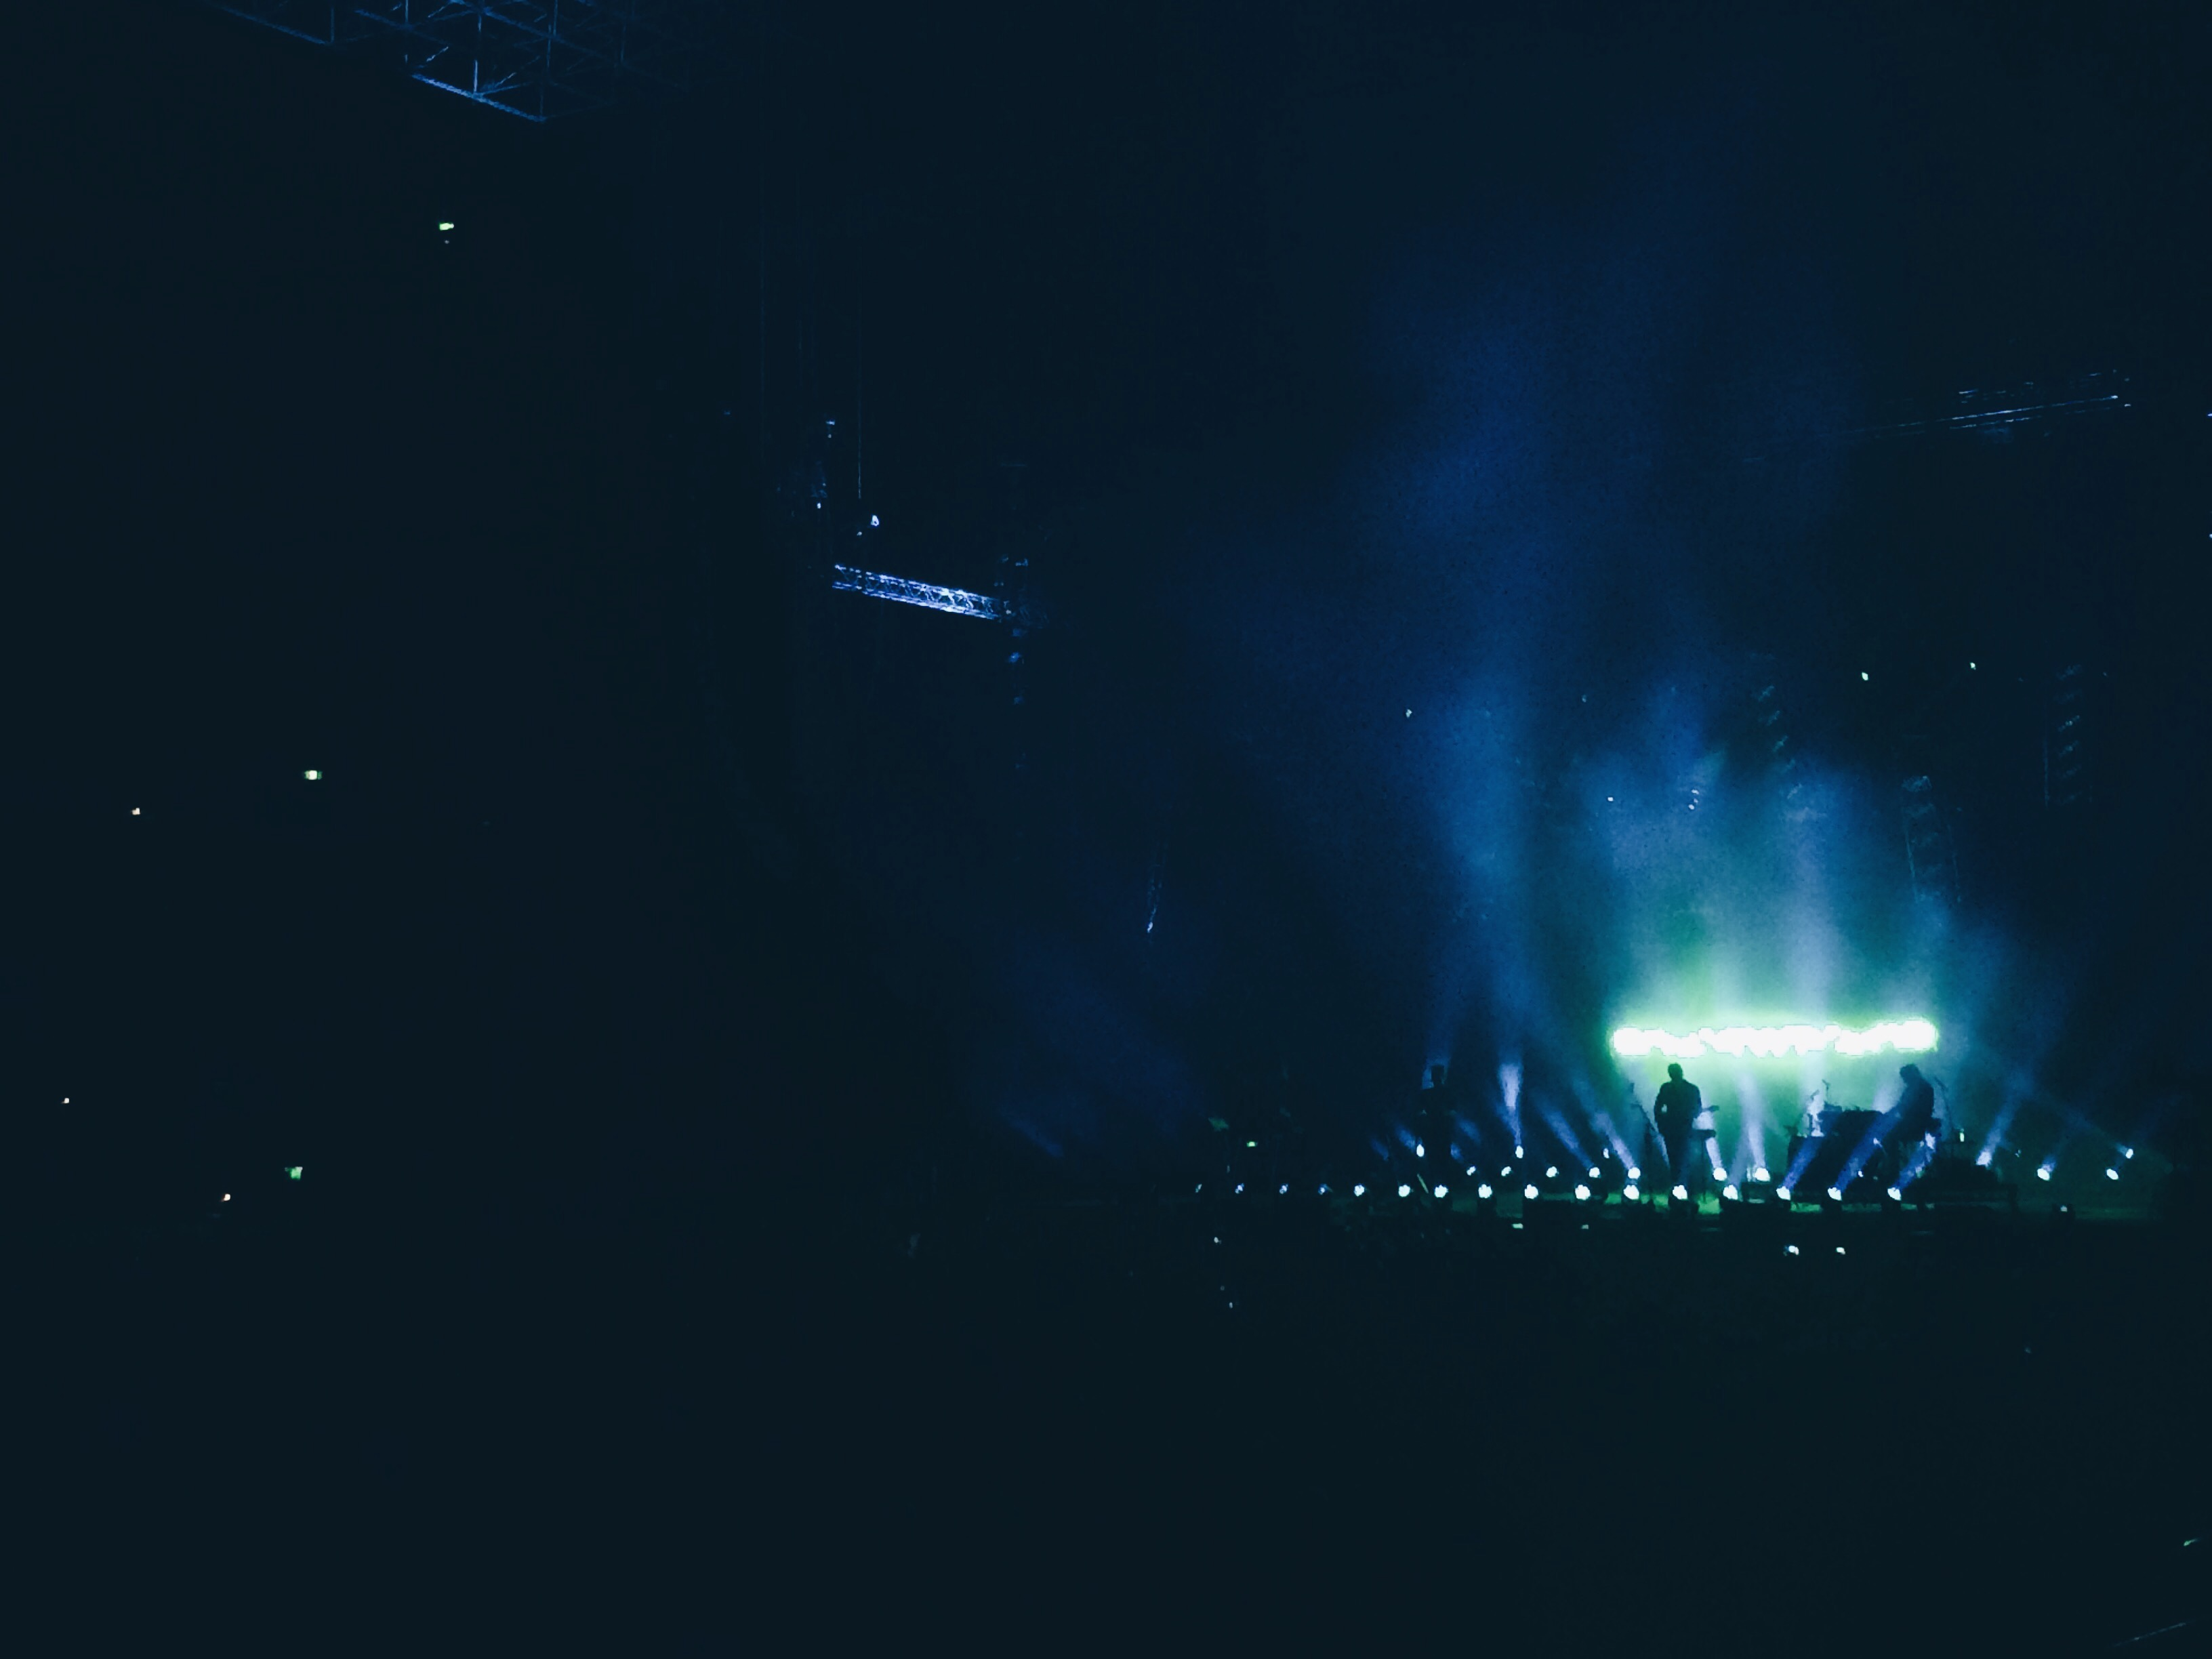 Ásgeir, alt-J, Rod Laver Arena, Melbourne, May 10 2015, live music, review, concert, Bramble and Thorn